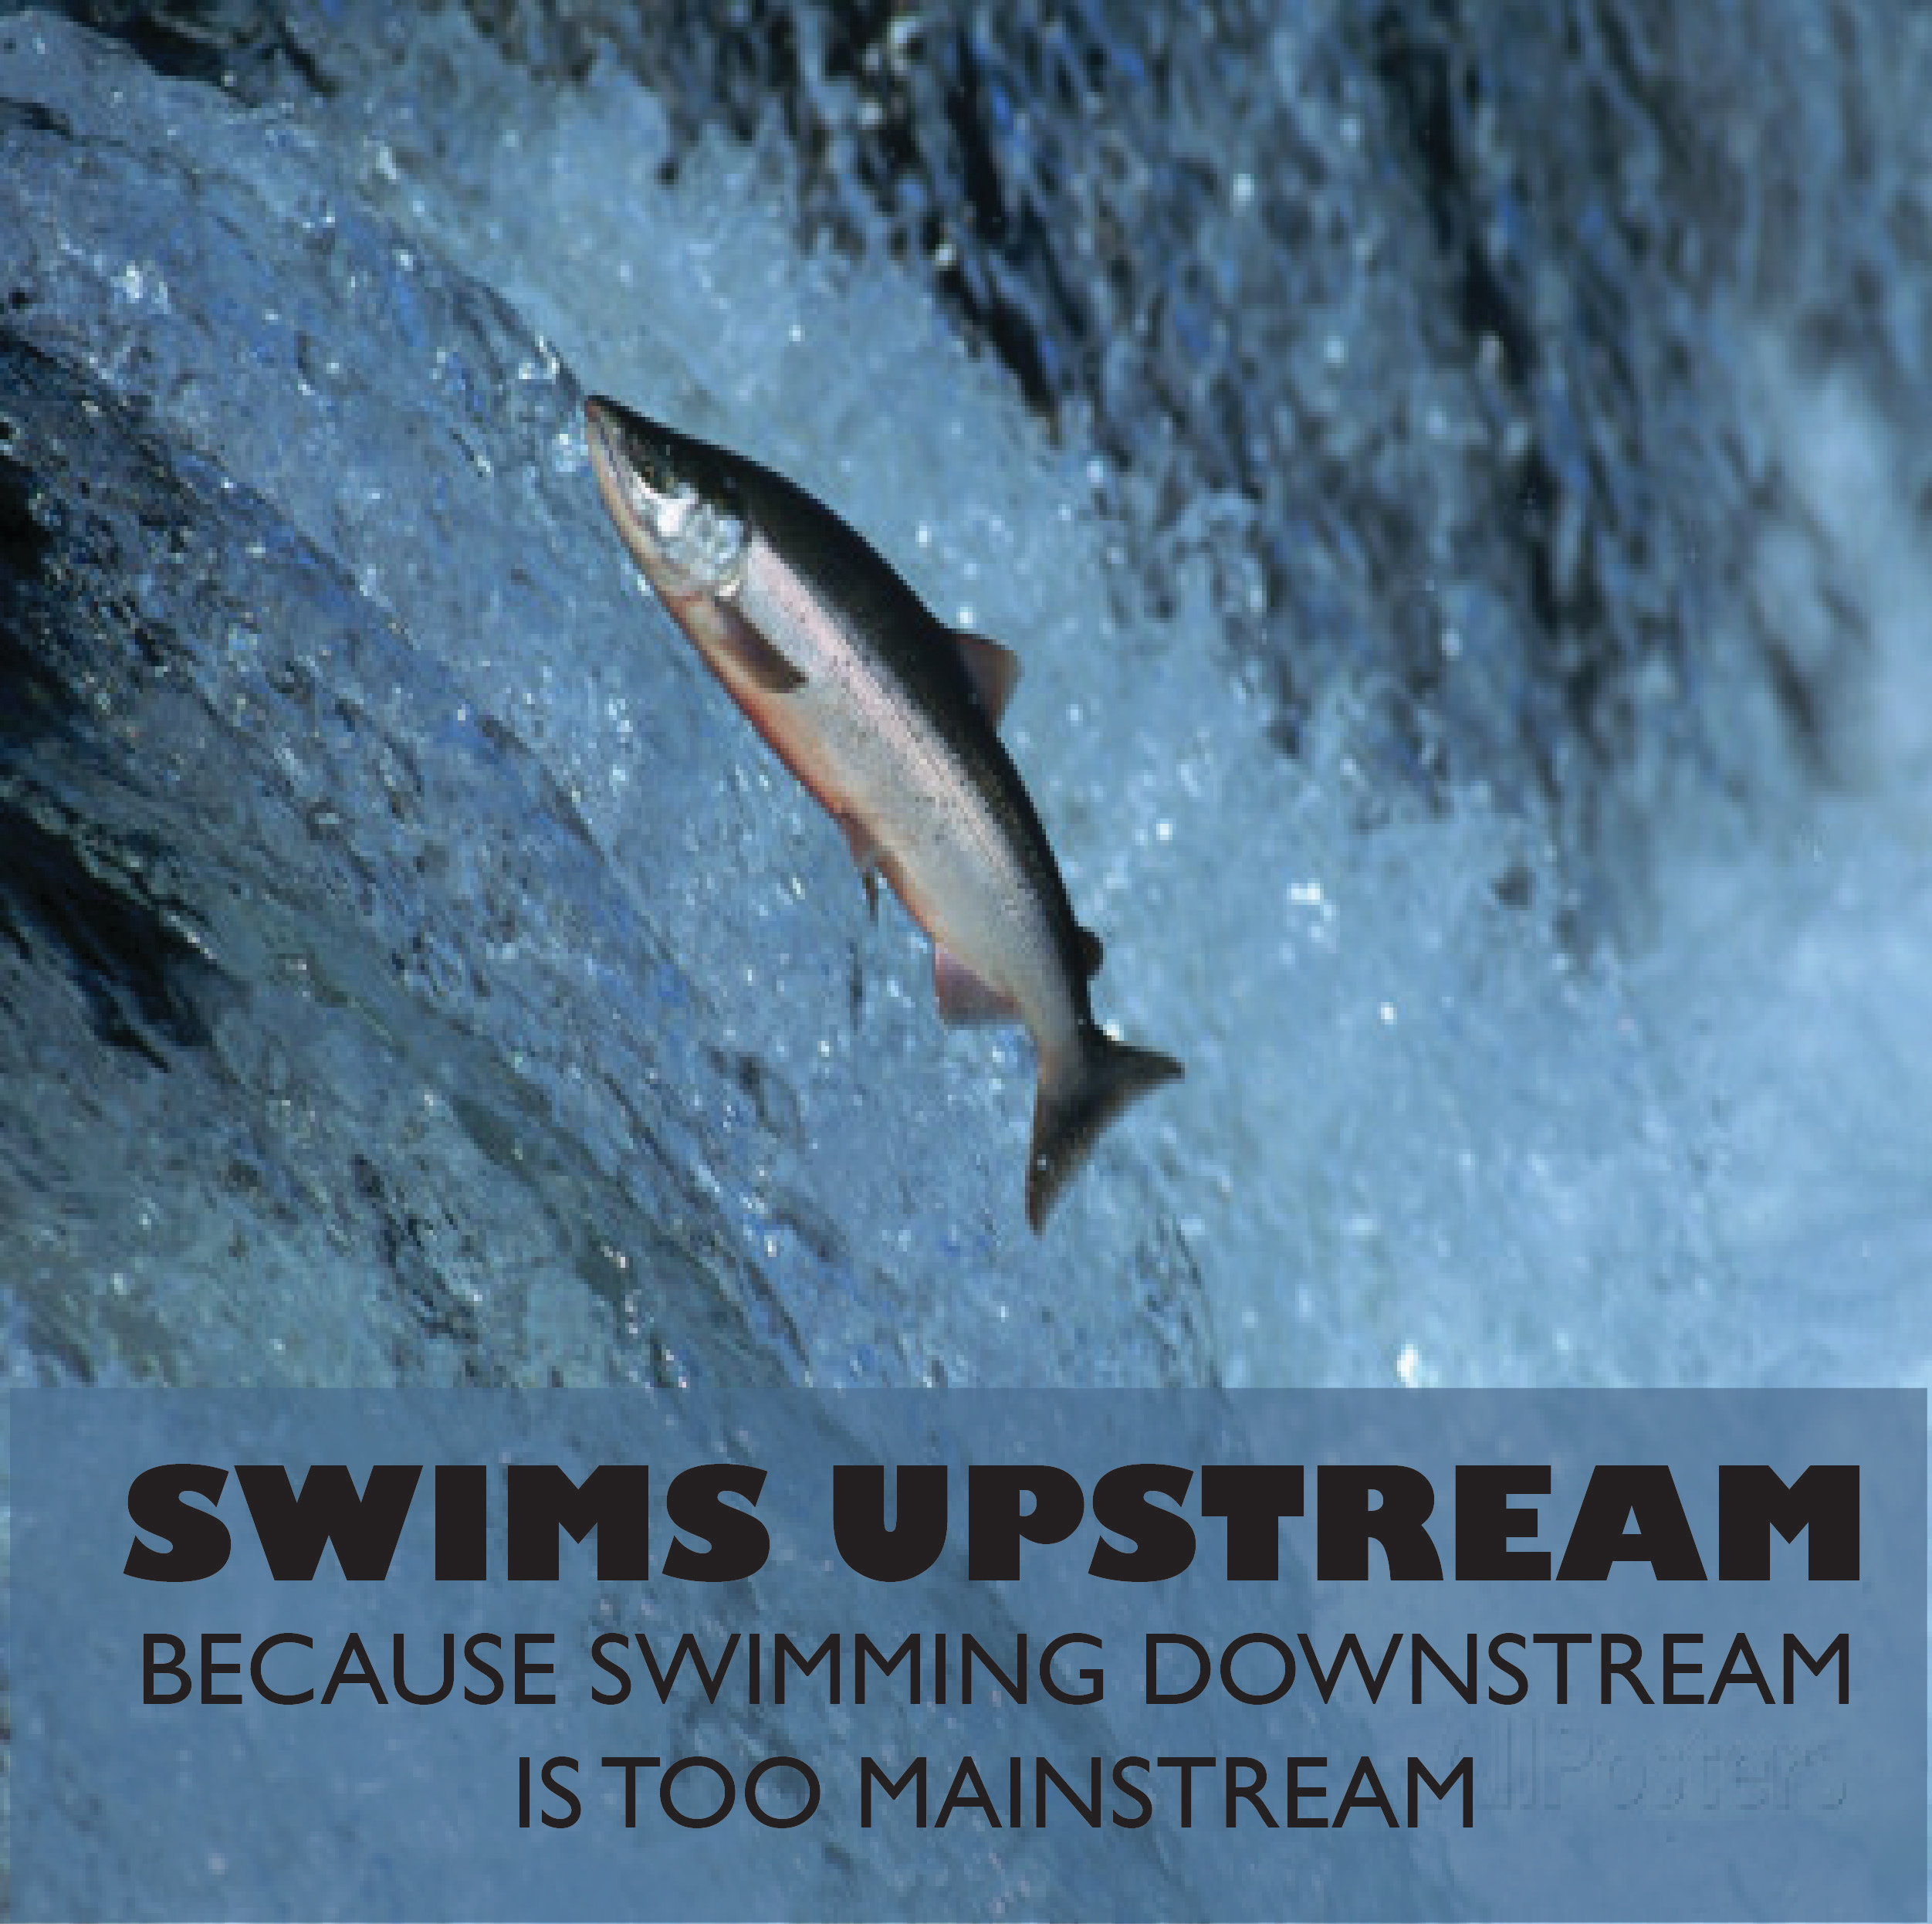 swims.upstream